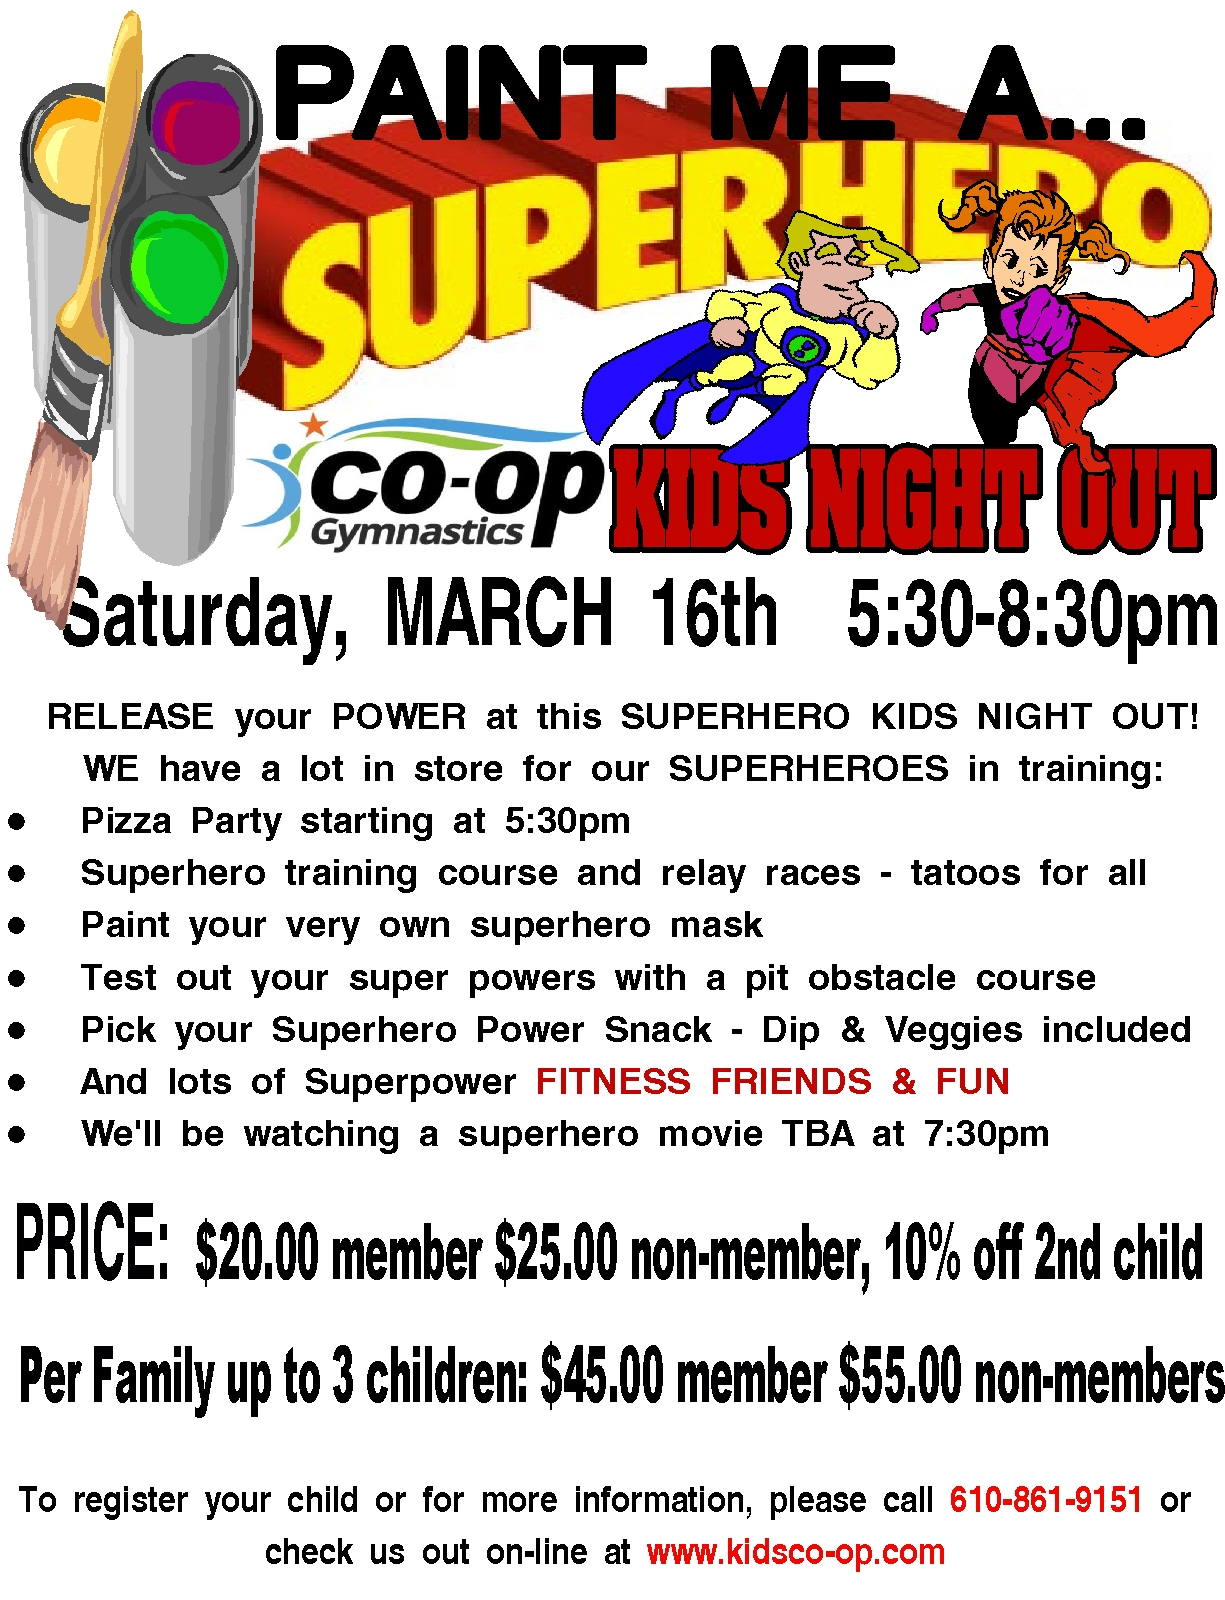 SUPERHERO-Kids-Night-Out-Flyer-2.jpg